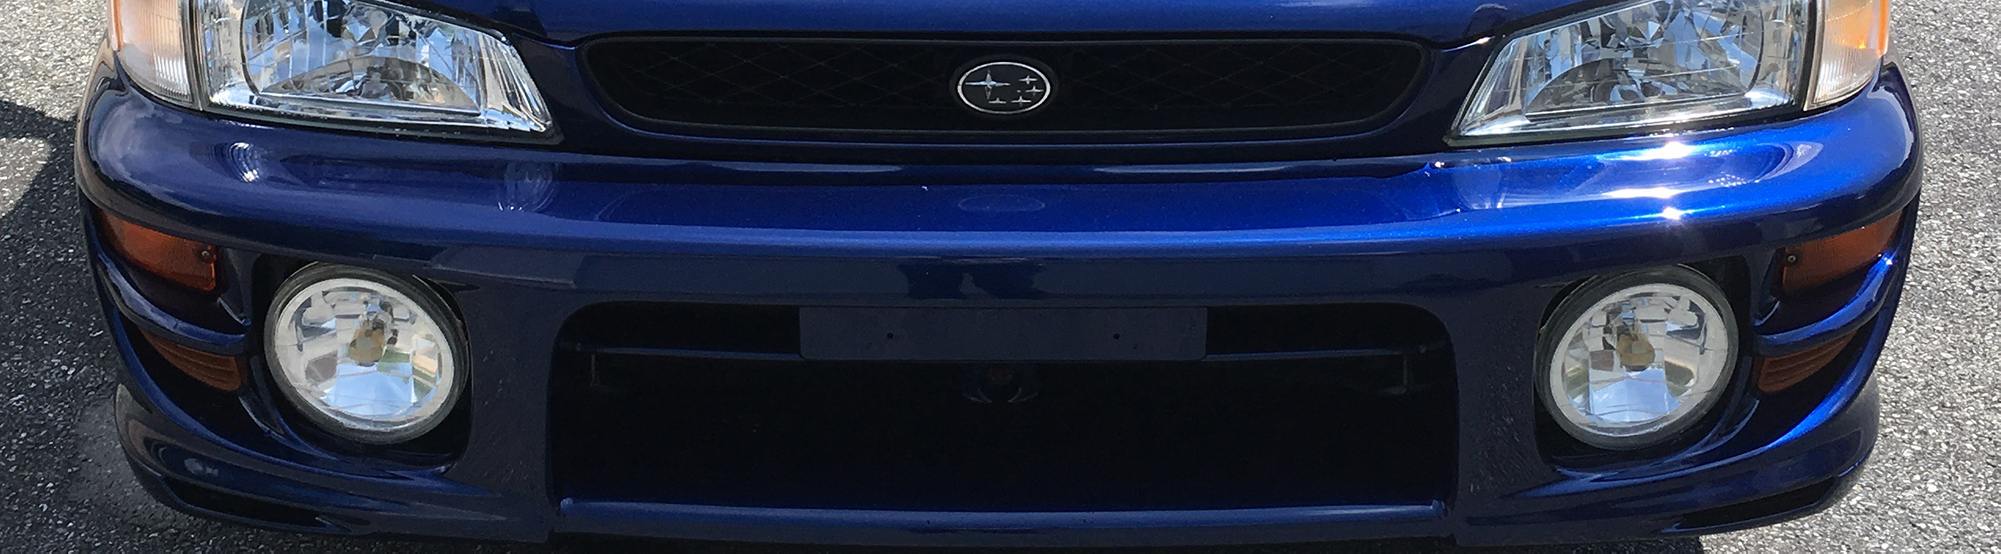 Best way to mount a front plate?-impreza-front.jpg